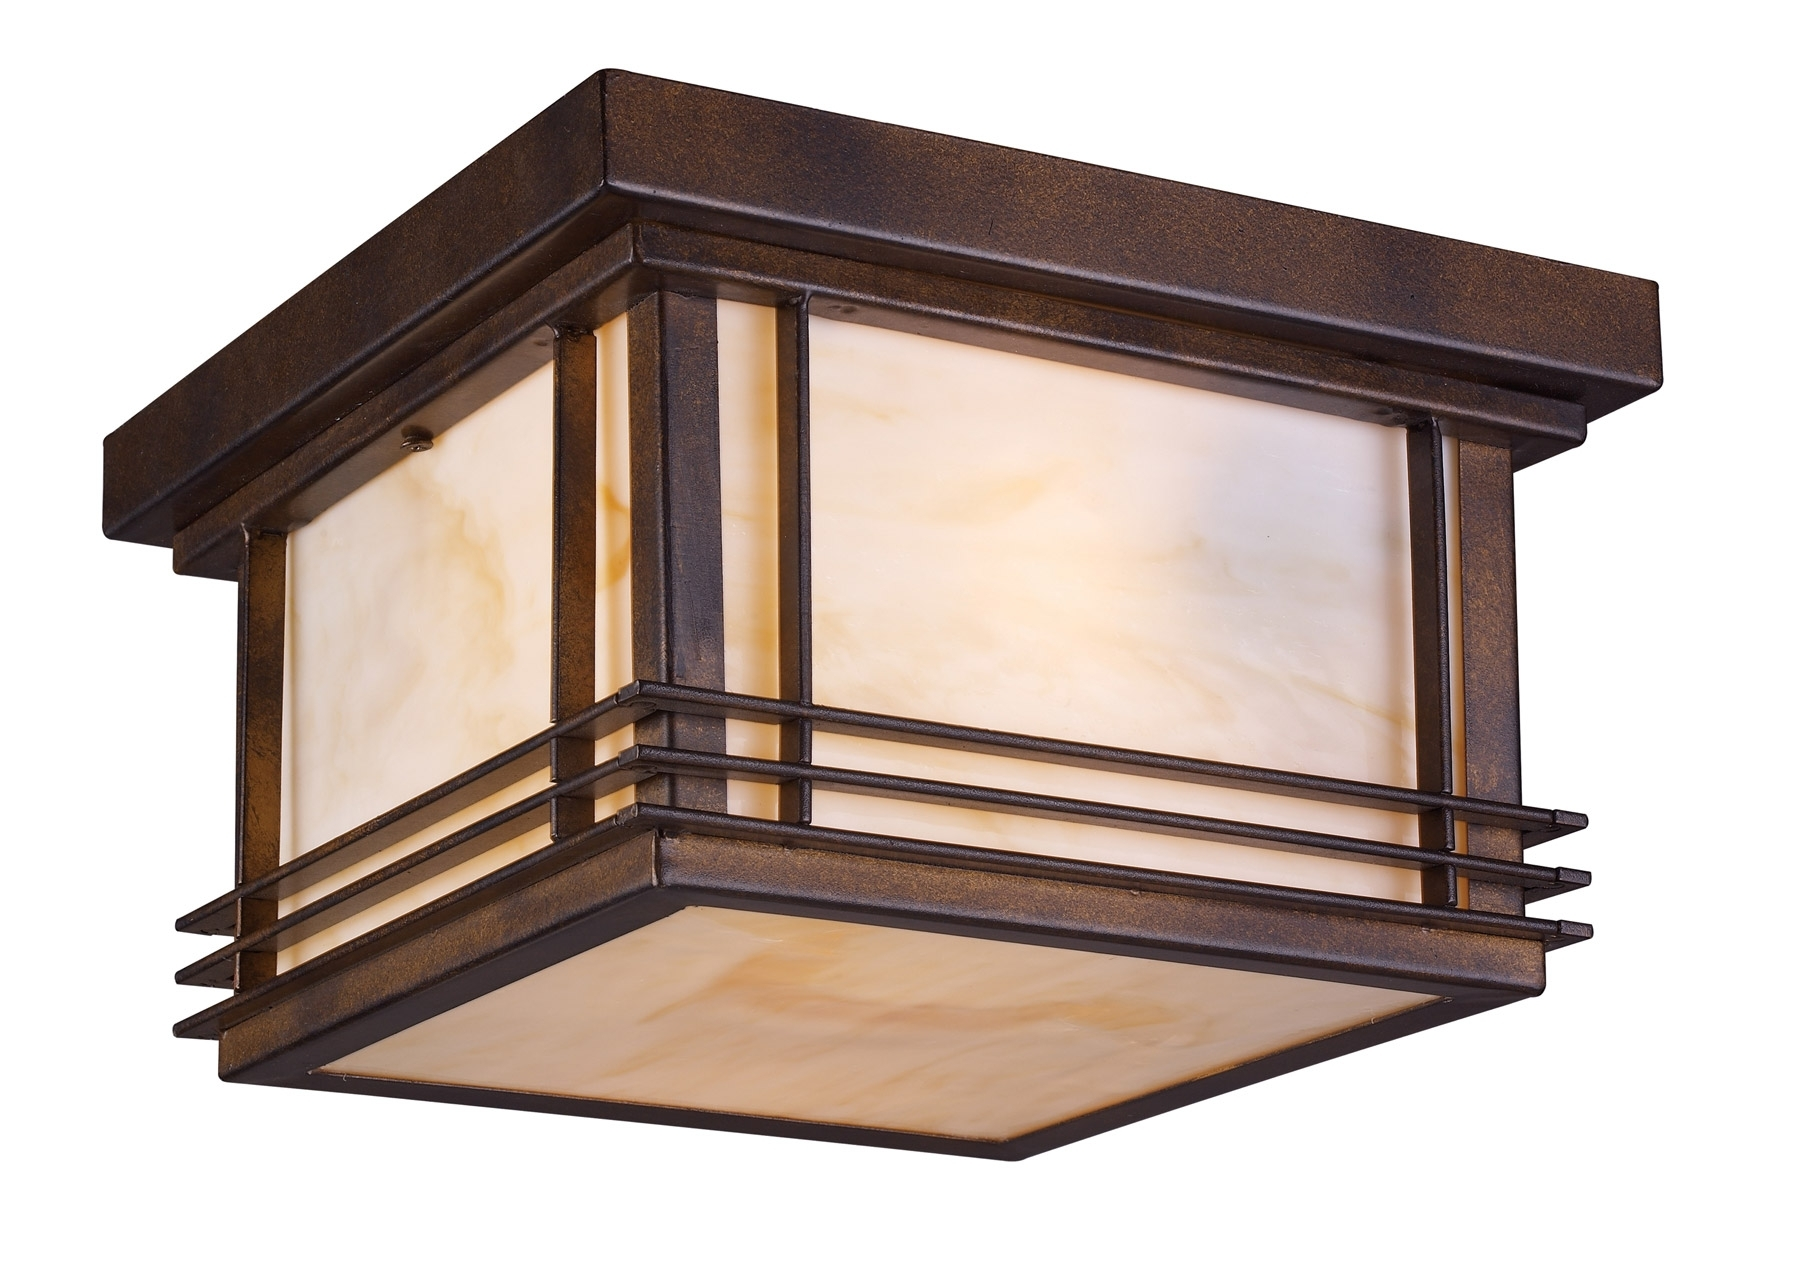 Preferred Outdoor Ceiling Lights For Porch Intended For Light : Antique Drum Outdoor Ceiling Lights For Porch Beautiful (View 16 of 20)